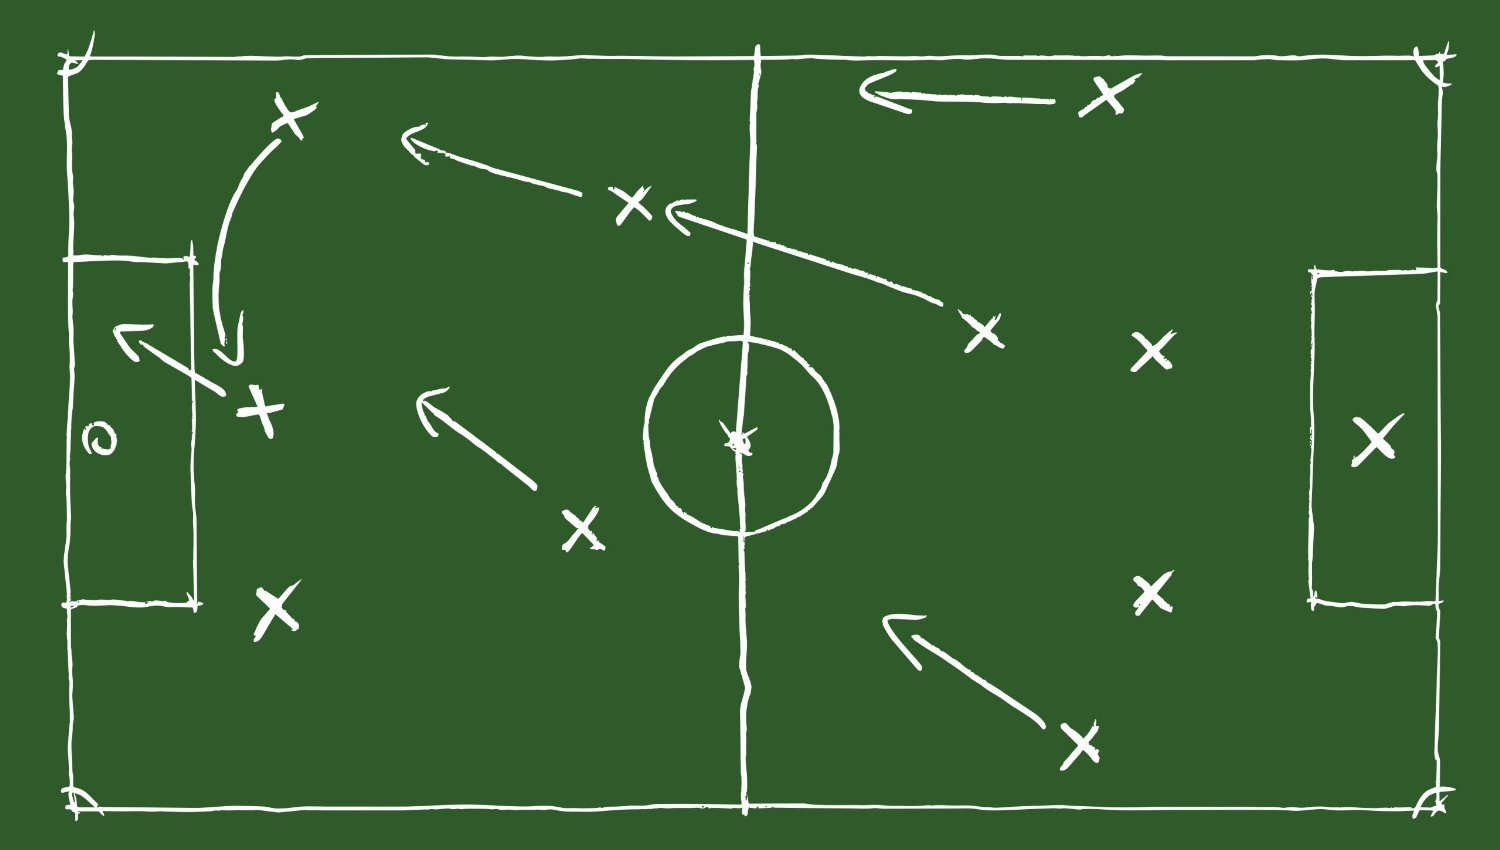 The Football Tactics Board